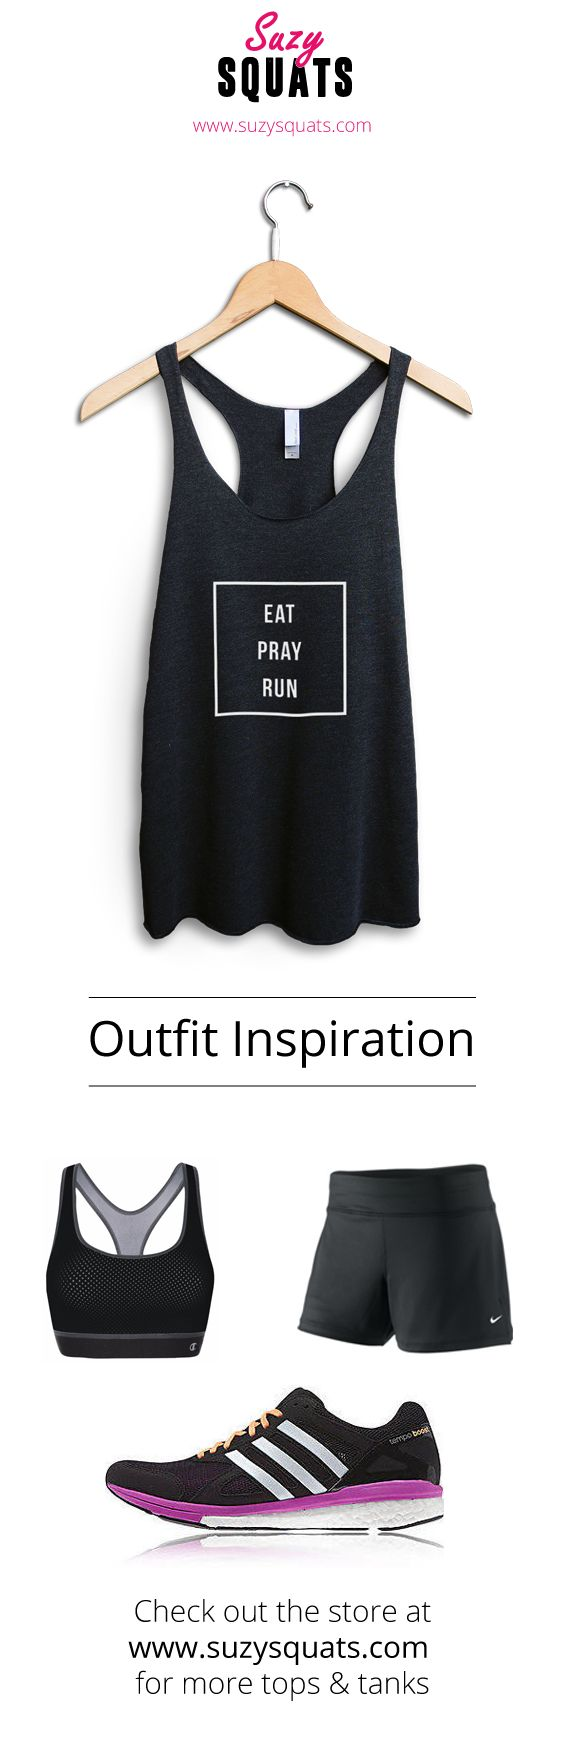 Suzy Squats funny running tank top, perfect to wear during your next run or as a gift for a running loving friend! You can find more funny workout clothing for running at the Suzy Squats store by clicking the link above.